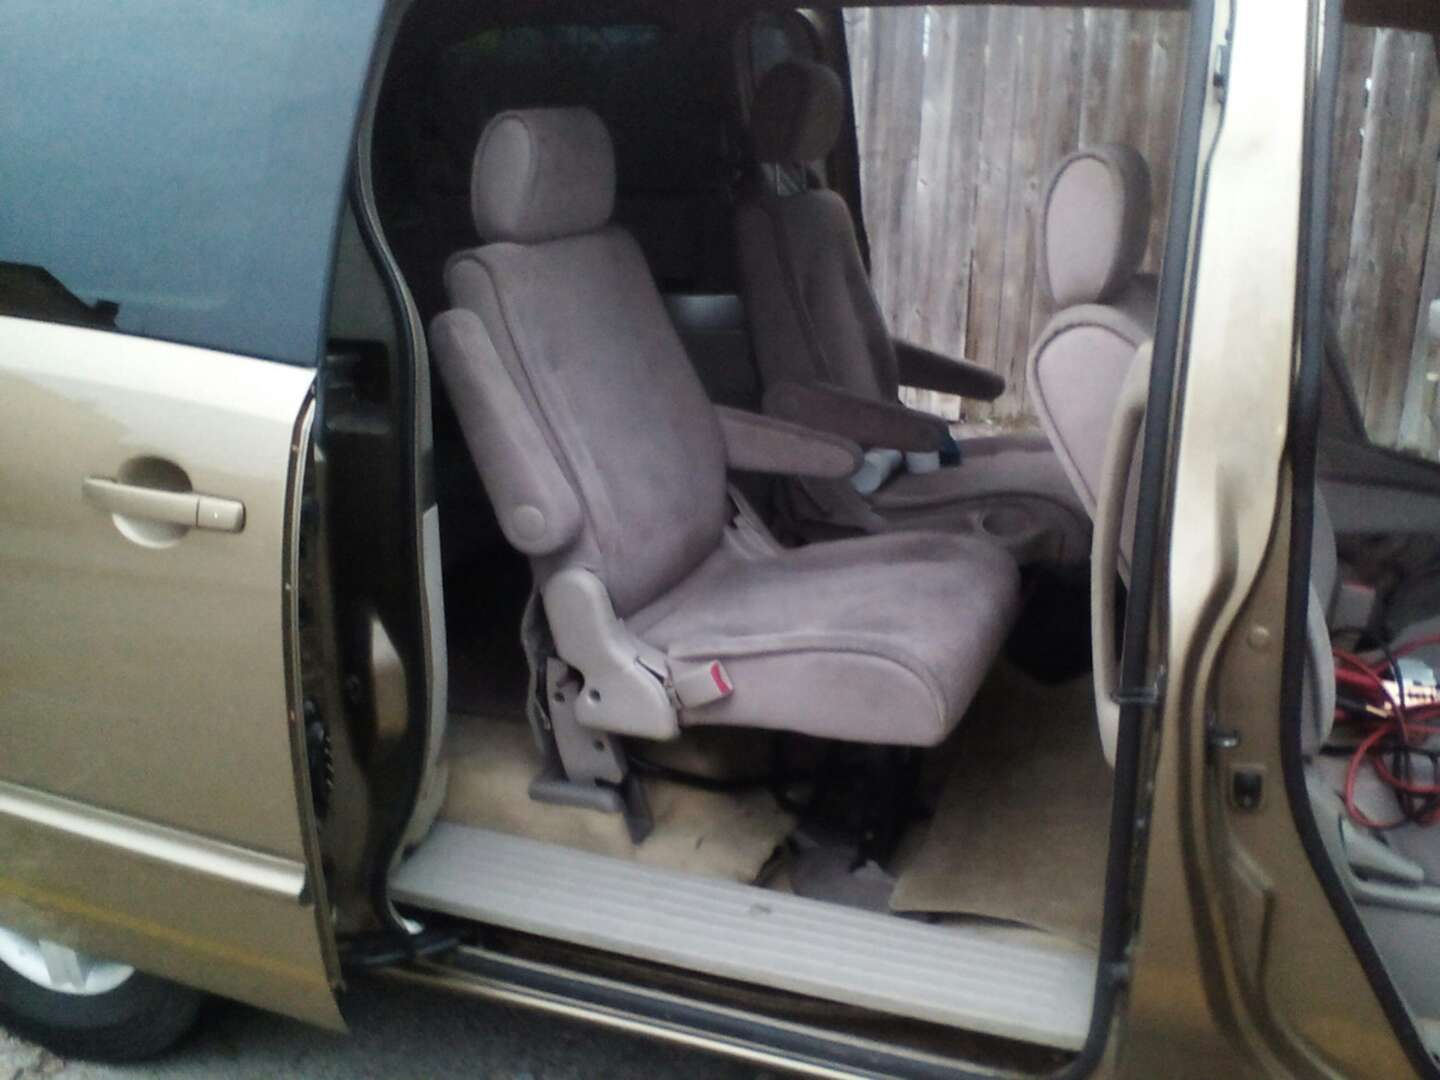 2004 nissan quest title salvage everything work great have ac 2004 nissan quest title salvage everything work great have ac heat electric doors 170000 vanachro Gallery